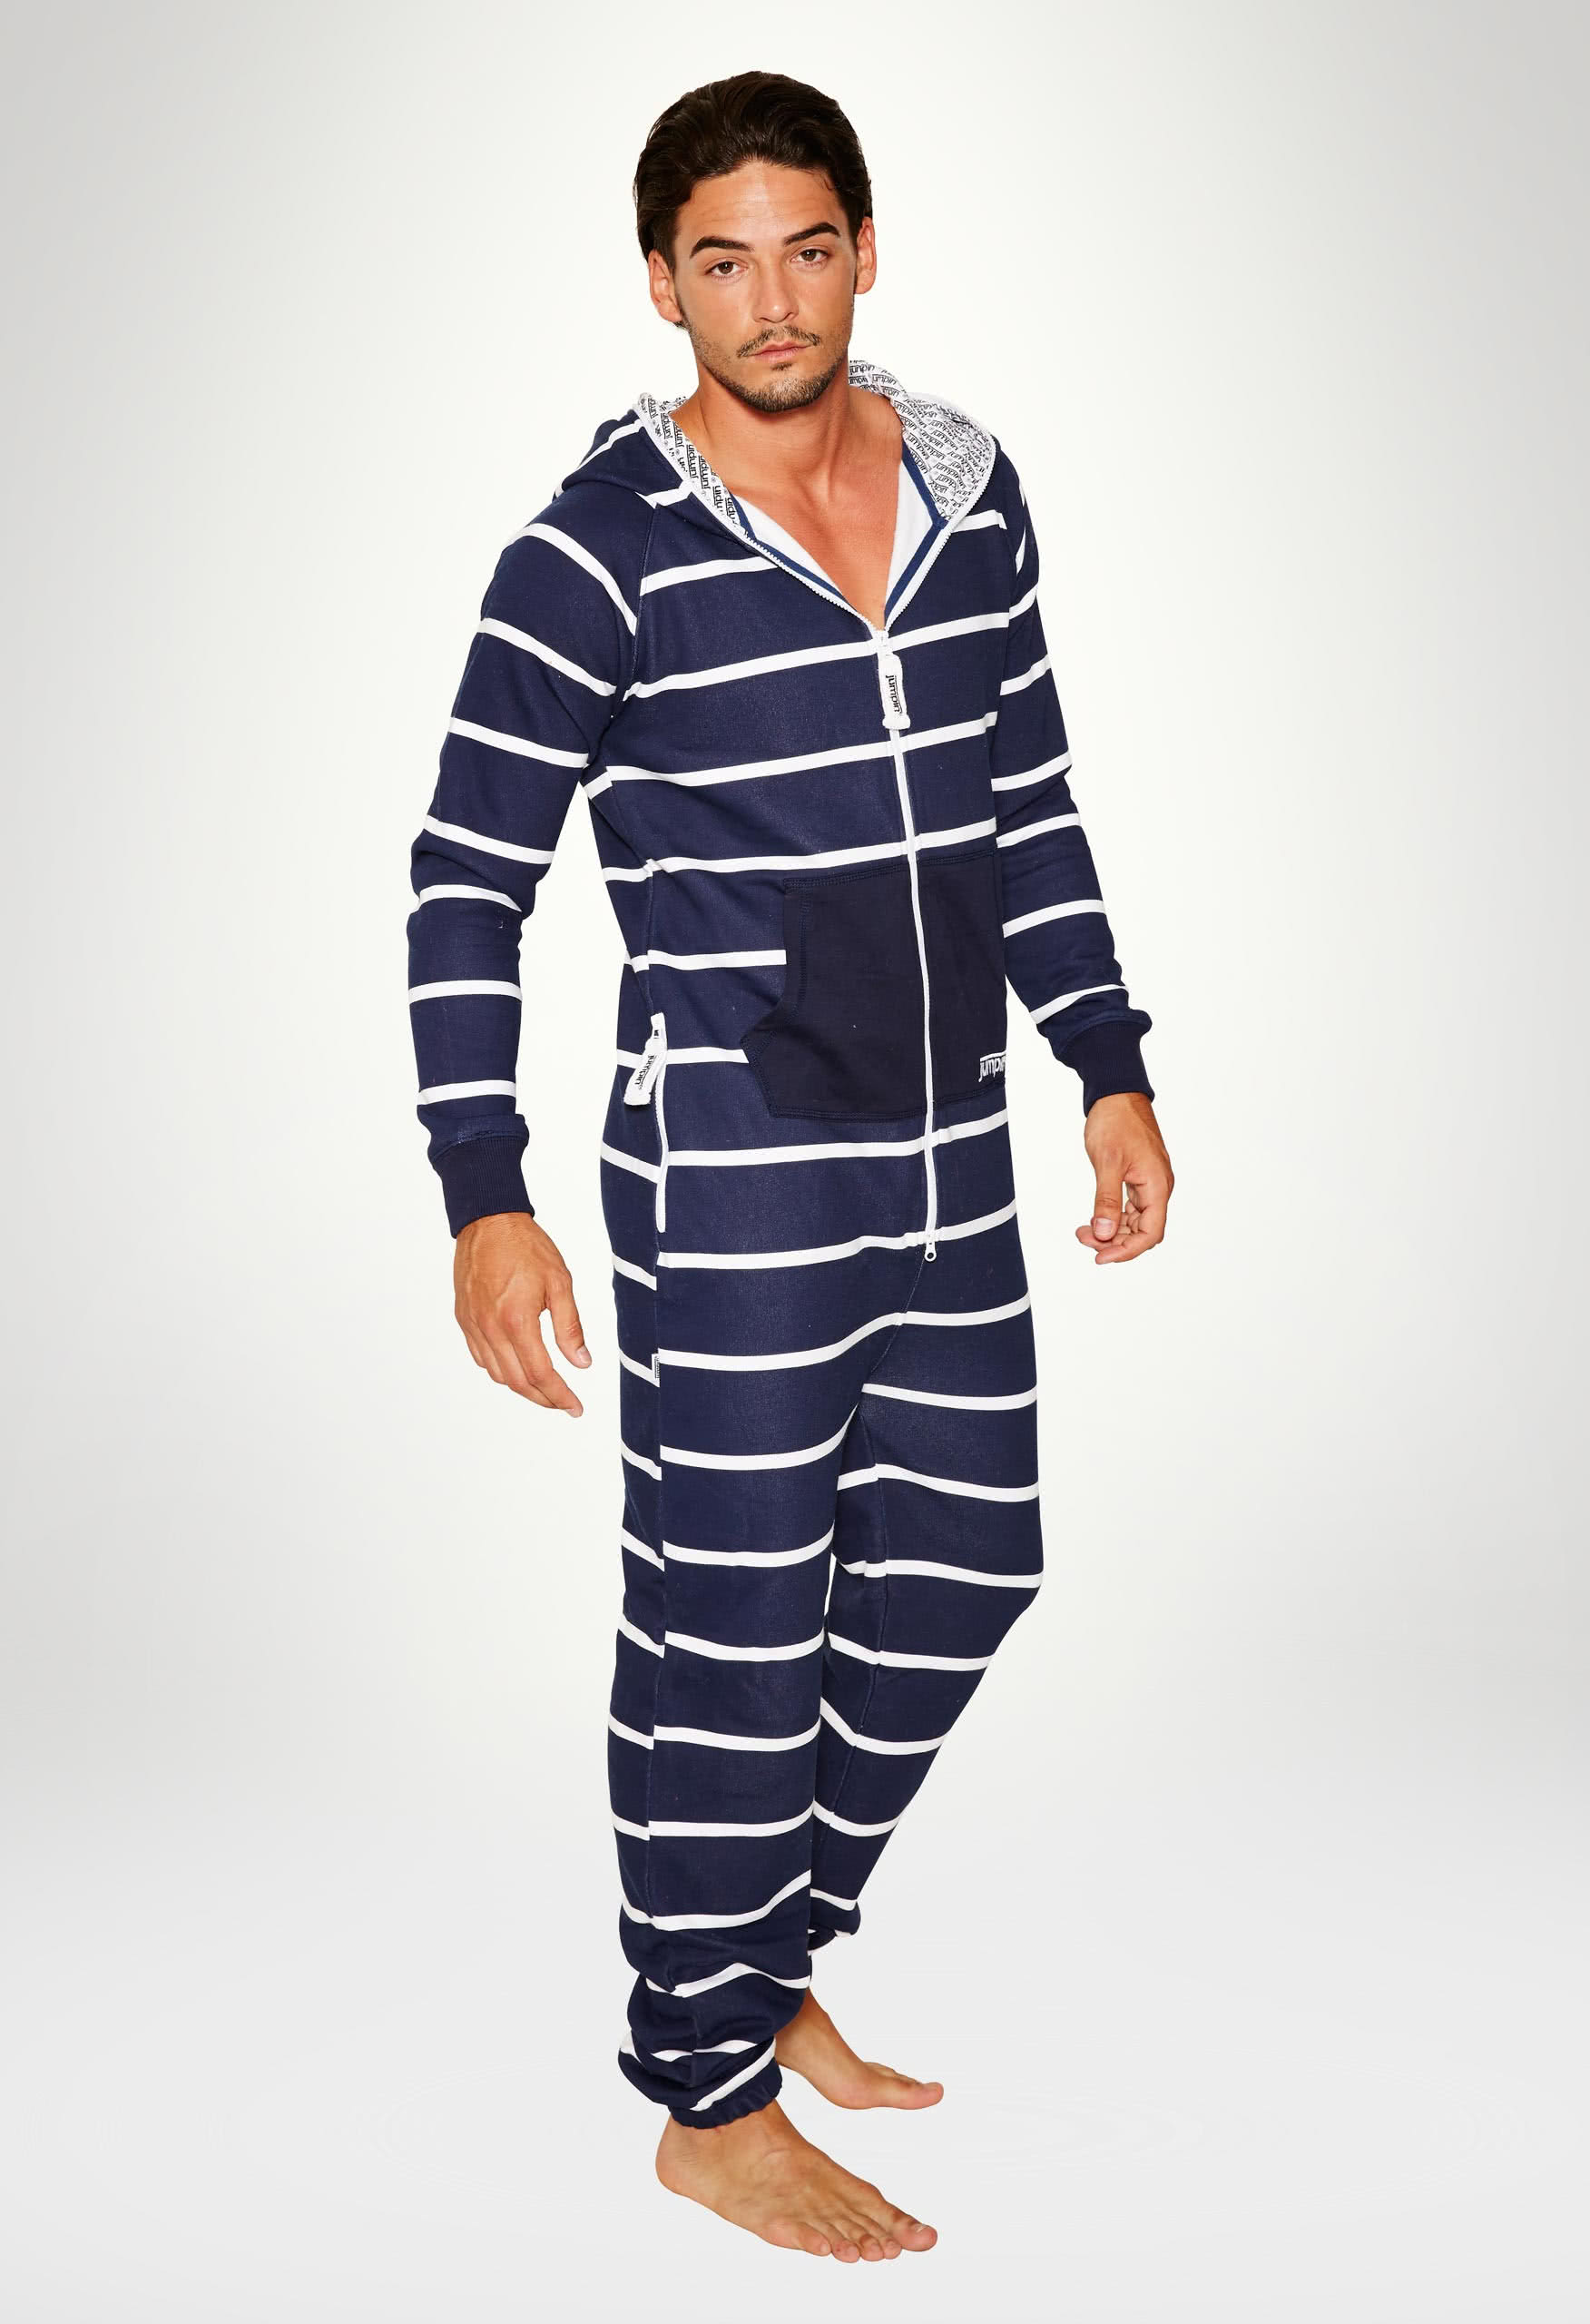 Jumpsuit Original Stripe Navy - Herren